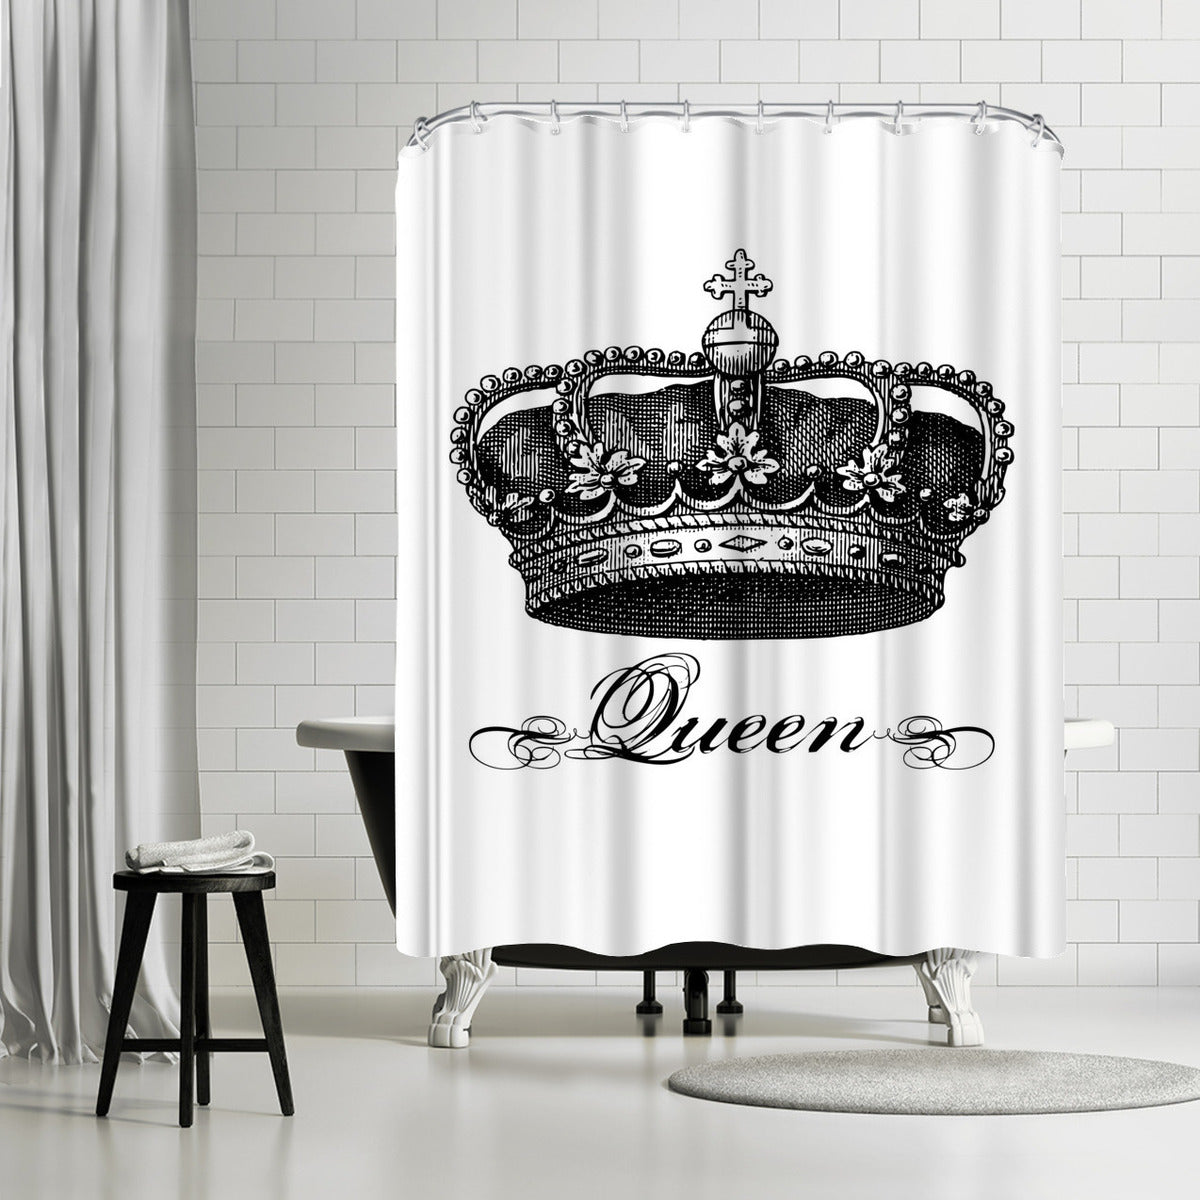 Crown Queen Black by Amy Brinkman Shower Curtain - Shower Curtain - Americanflat